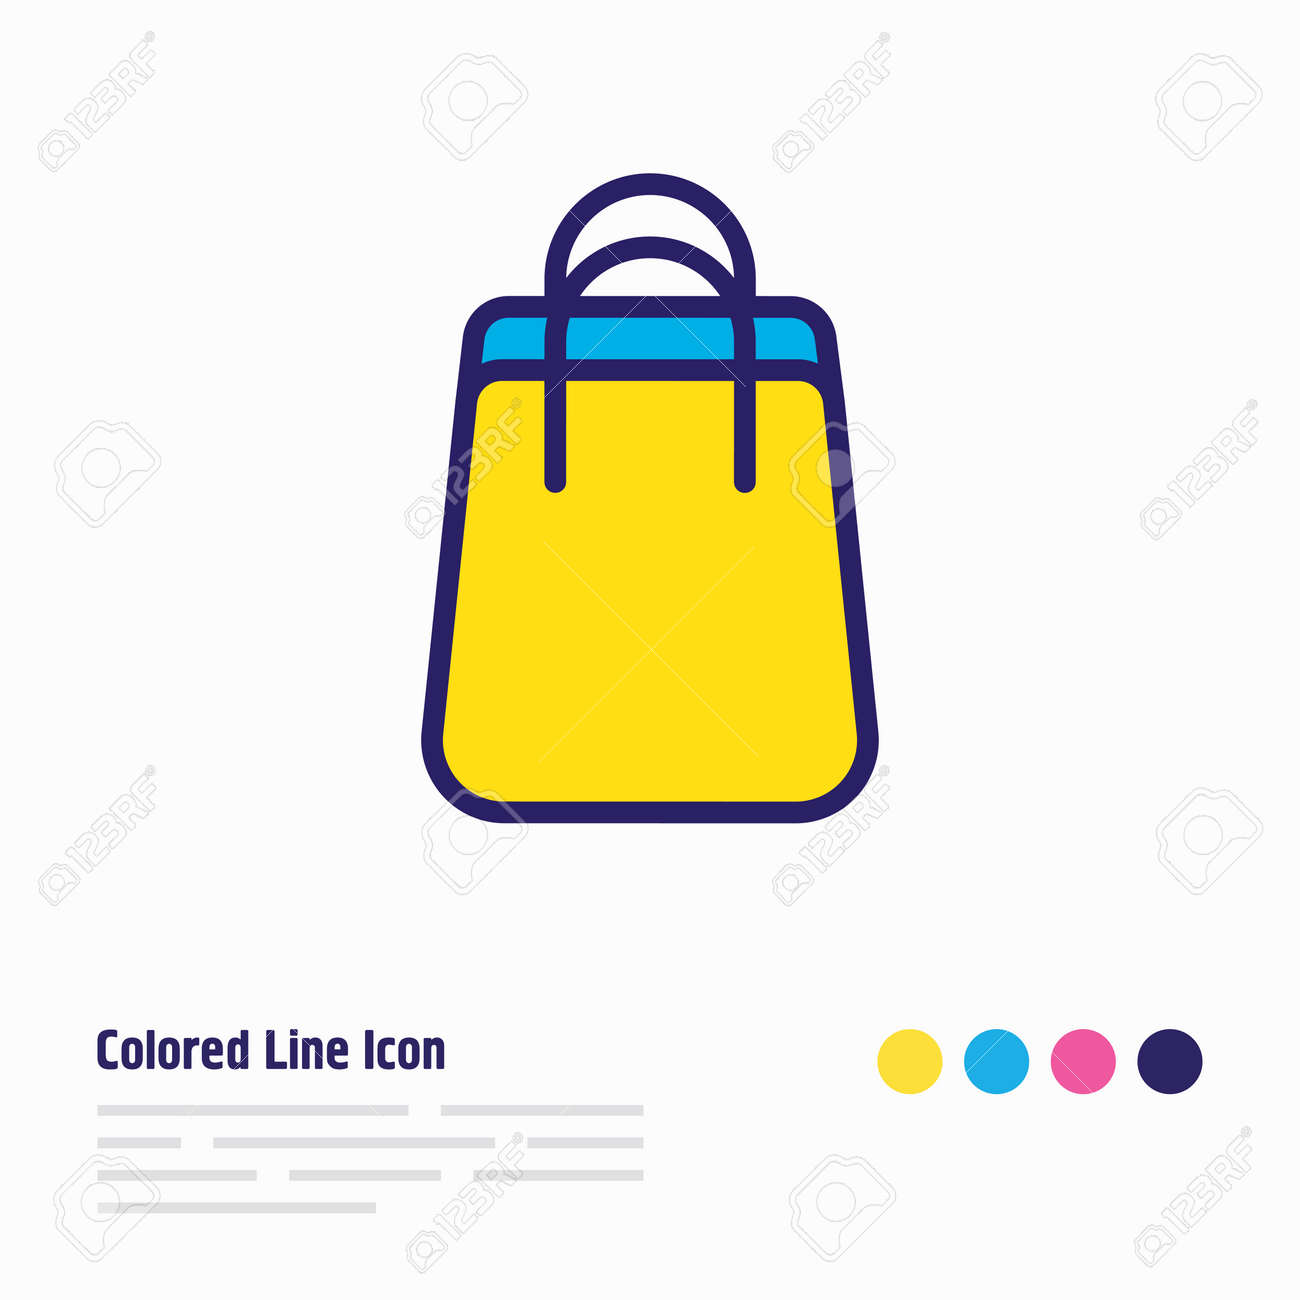 Vector illustration of shopping bag icon colored line. Beautiful wholesale element also can be used as package icon element. - 158380325